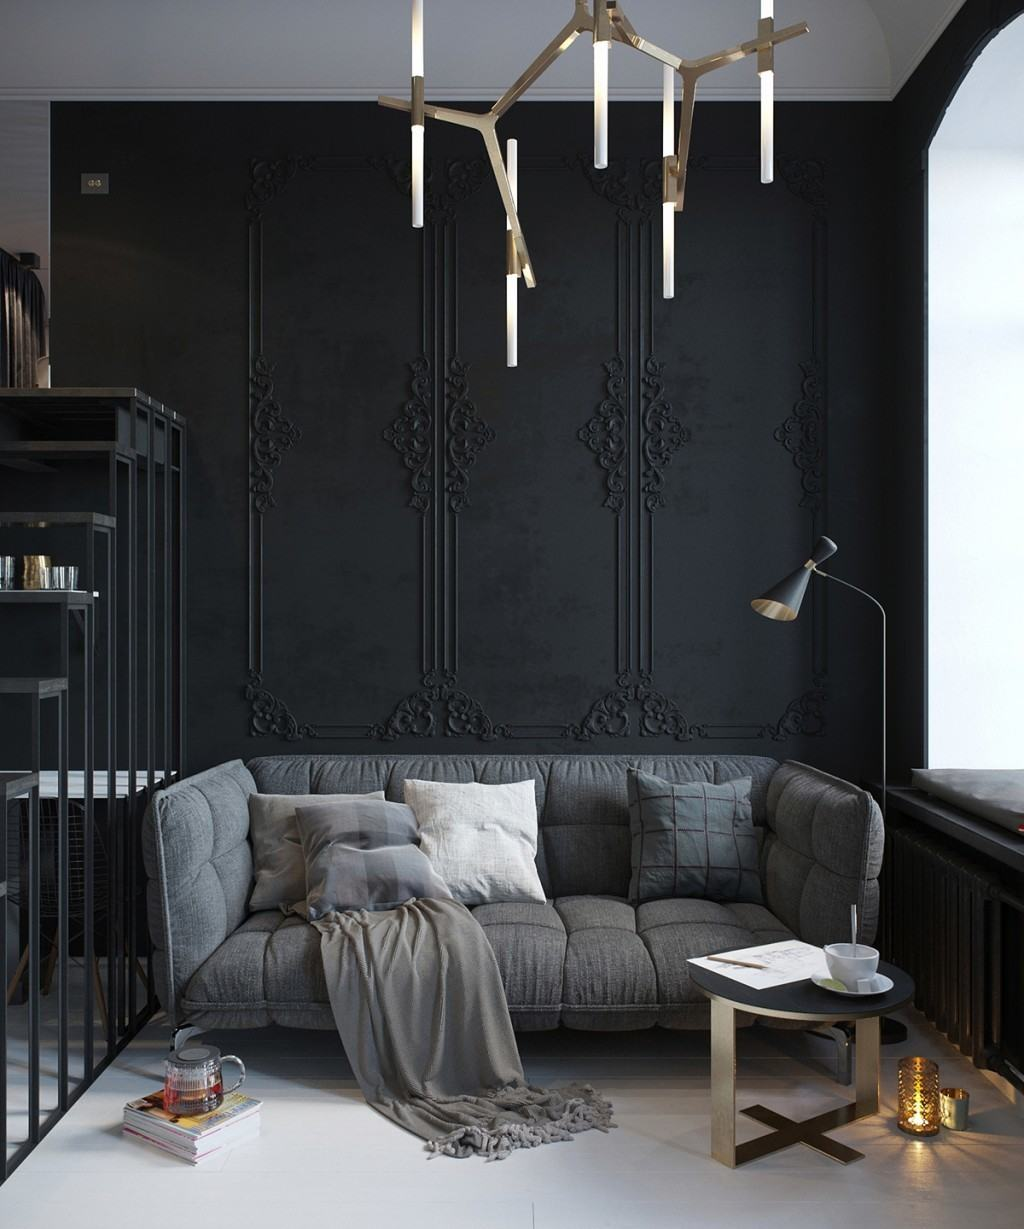 Decorating With Black White: 28 Ideas For Black Wall Interiors & How To Style Them